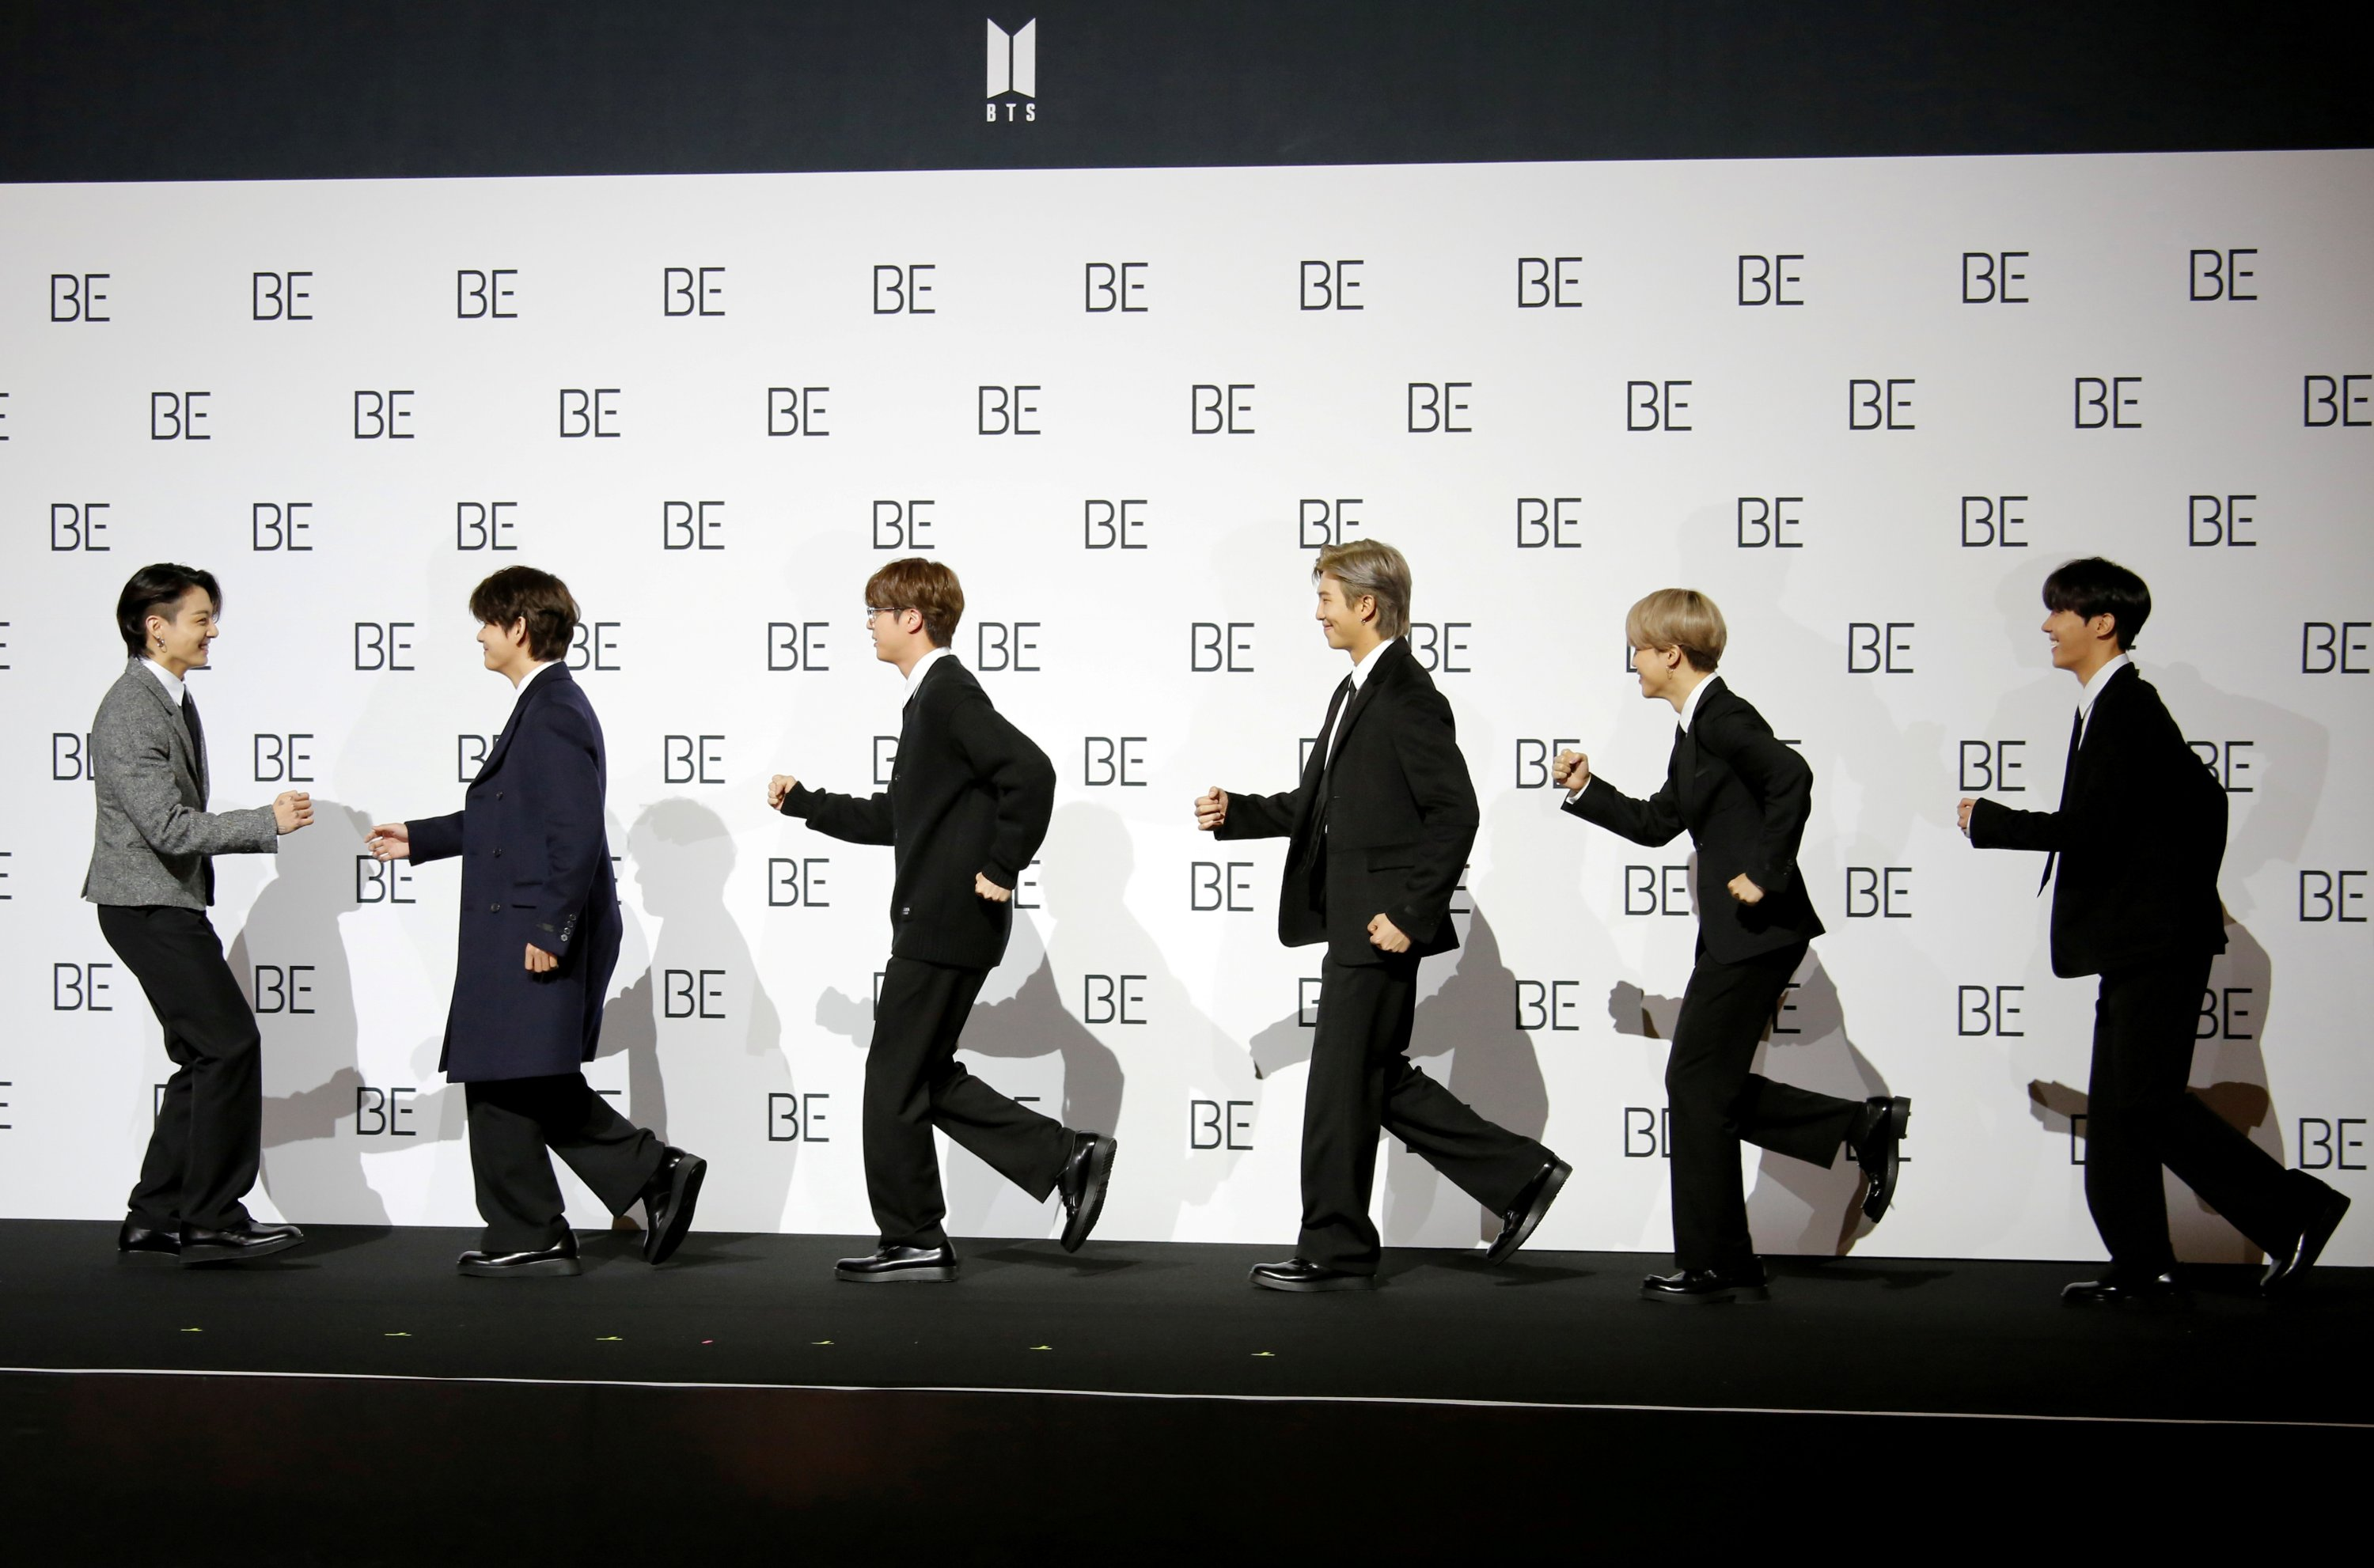 Members of K-pop boy band BTS pose for photographs during a news conference promoting their new album 'BE(Deluxe Edition)' in Seoul, South Korea, Nov. 20, 2020. (REUTERS Photo)